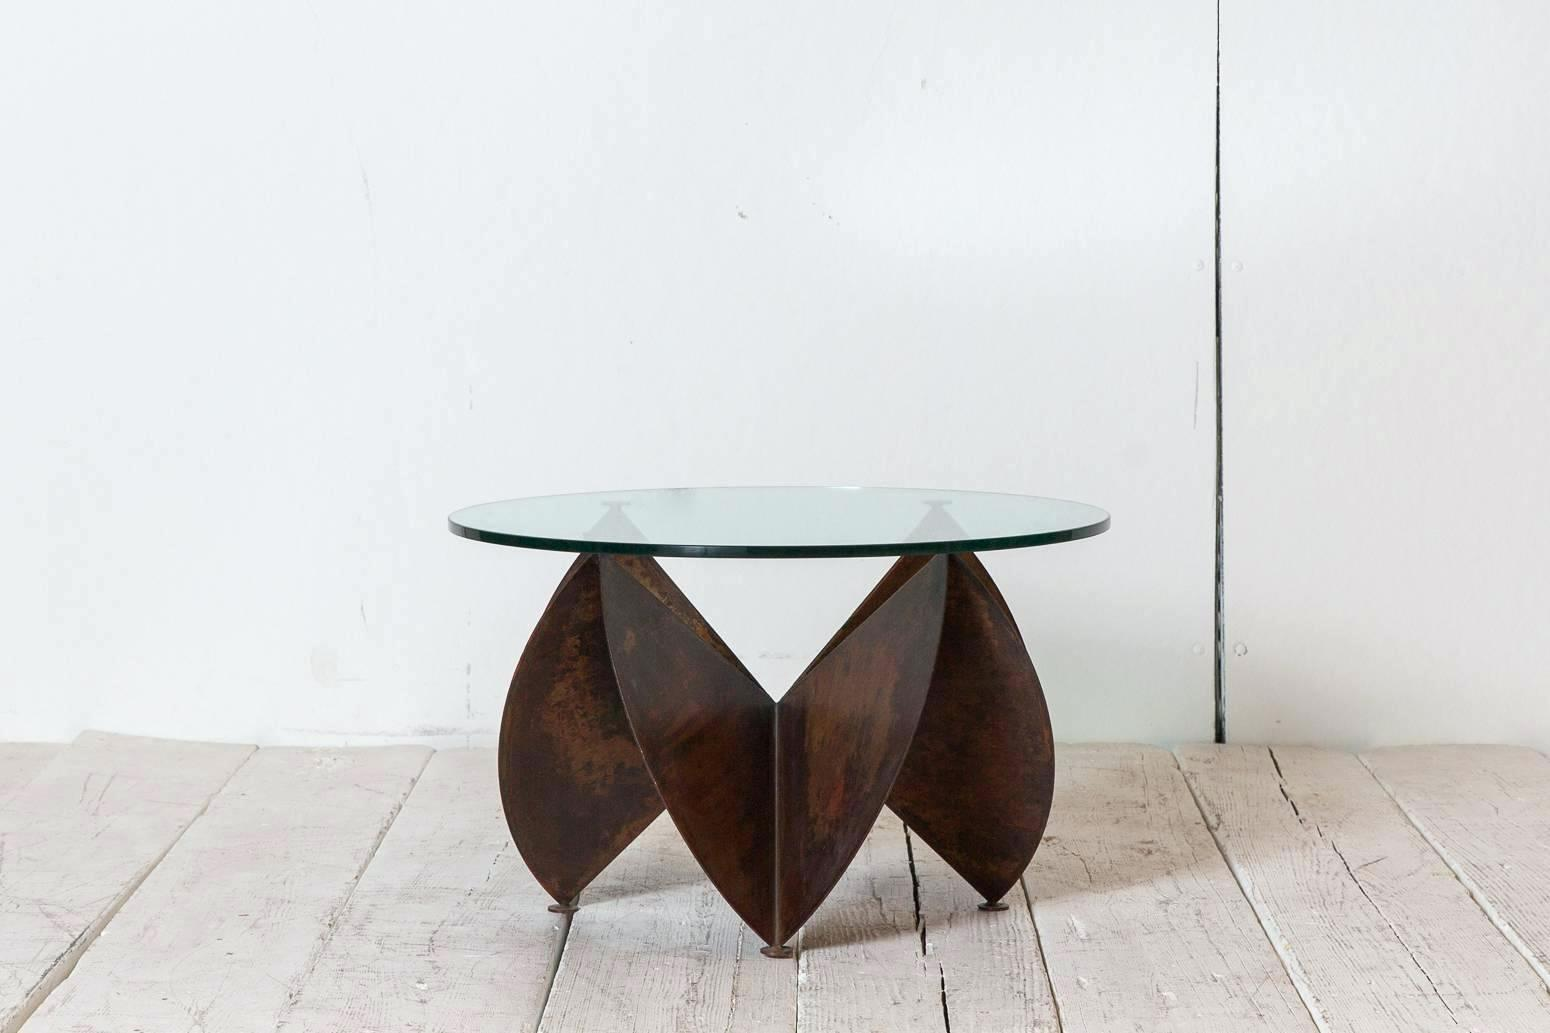 copper side tables for living room table asda argos french metallic sainsburys ikea sculptural with round glass top kitchen pretty master rou drum accent full size feet marble